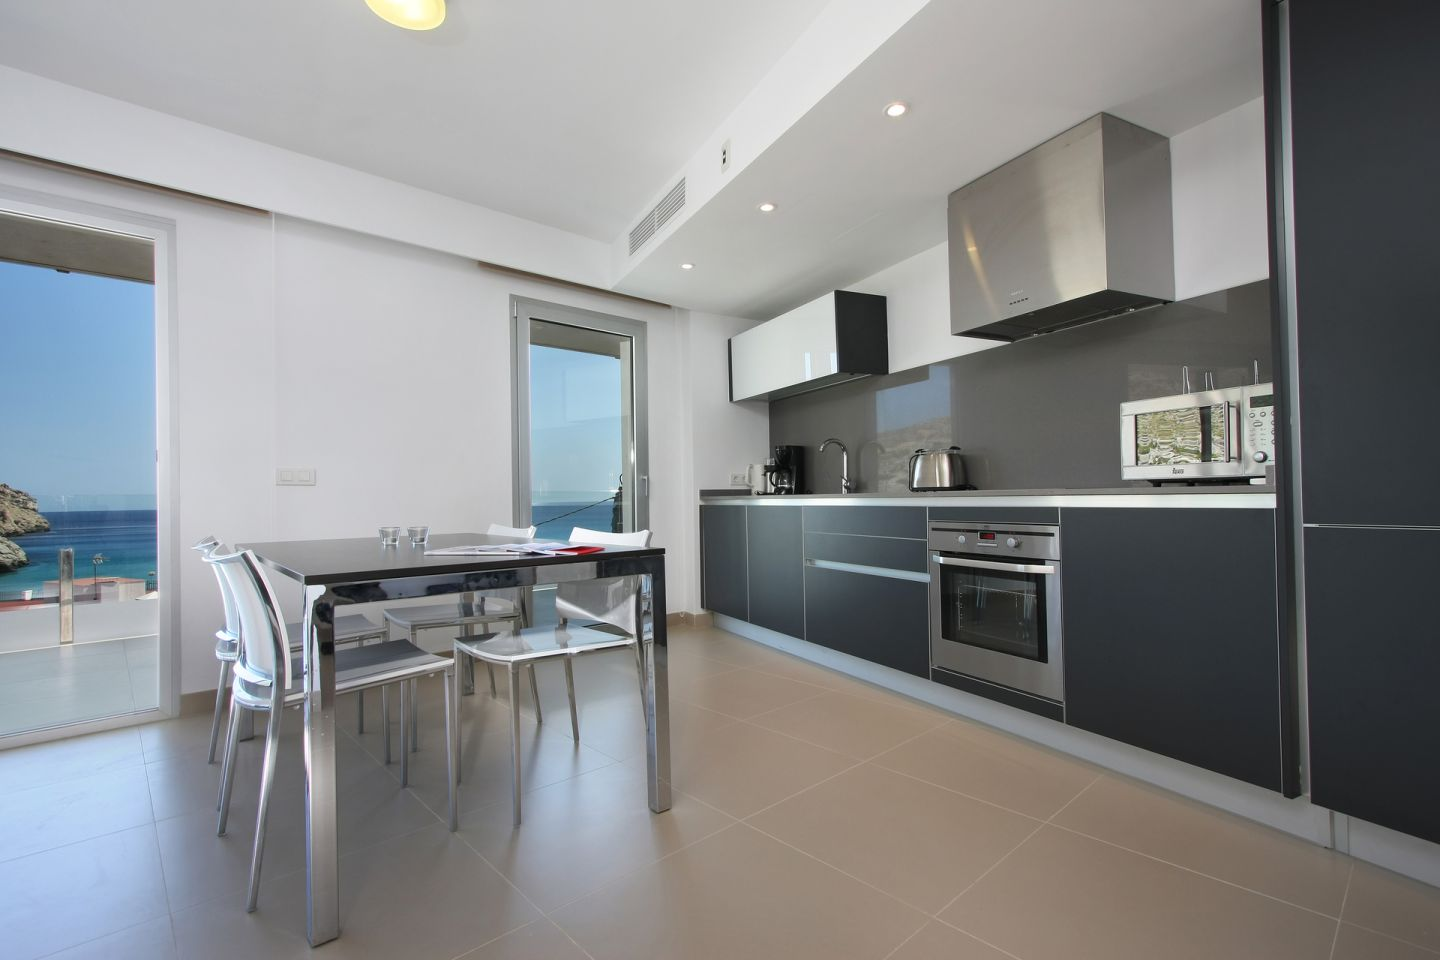 2 Bed Penthouse for sale in Cala San Vicente 6